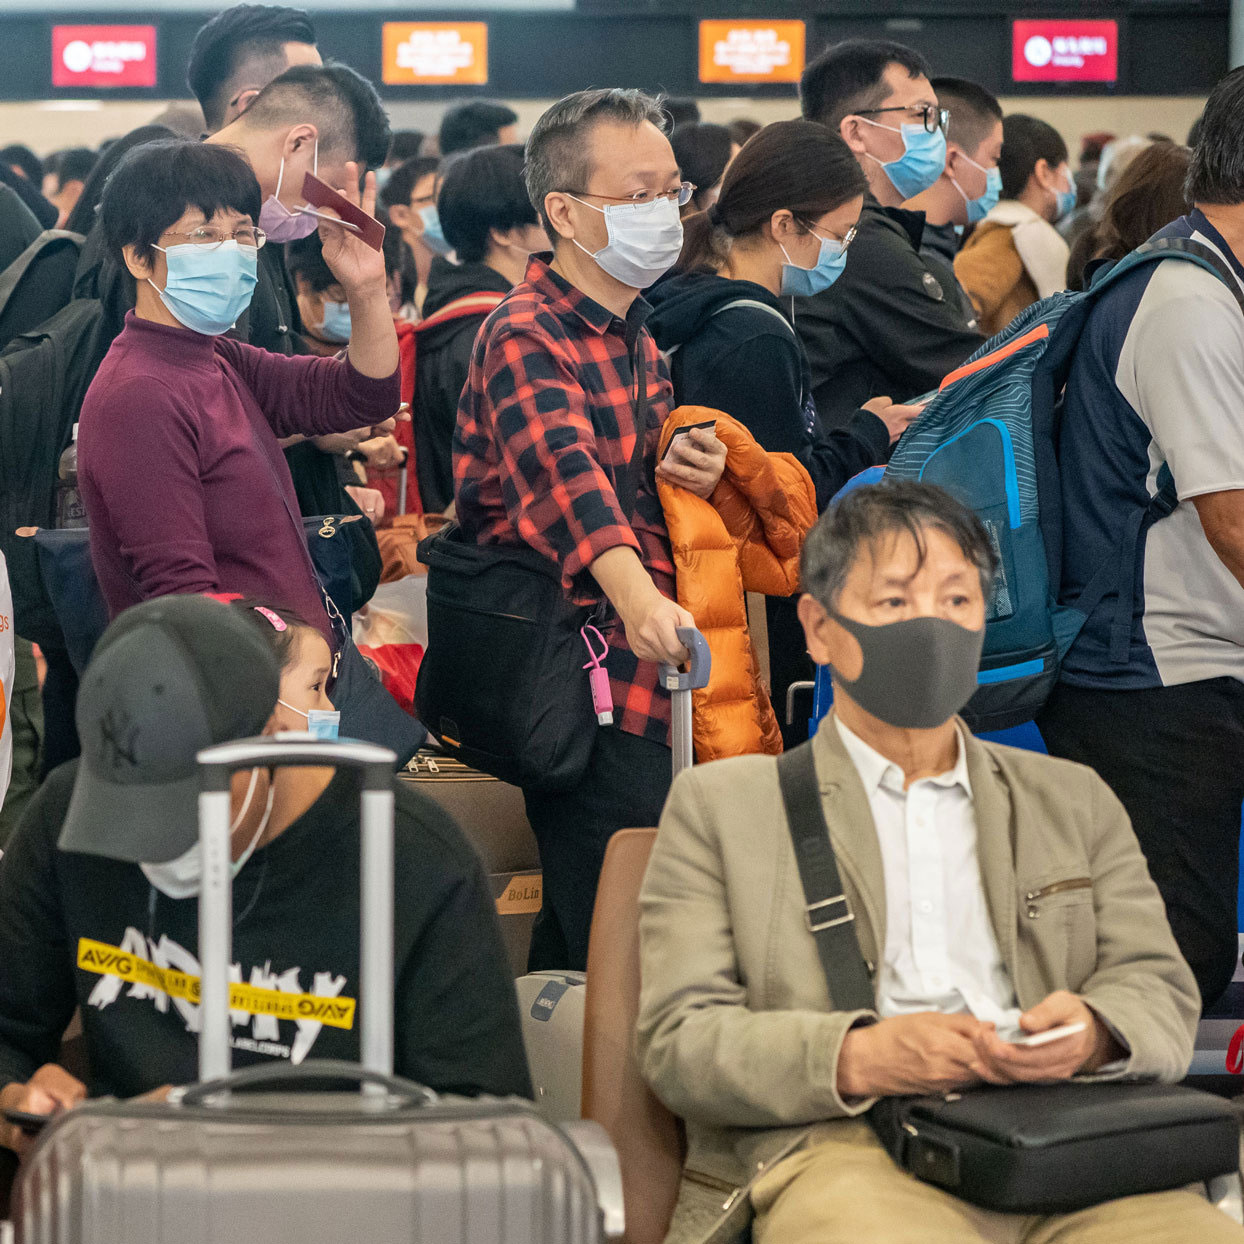 people at an airport wearing medical face masks